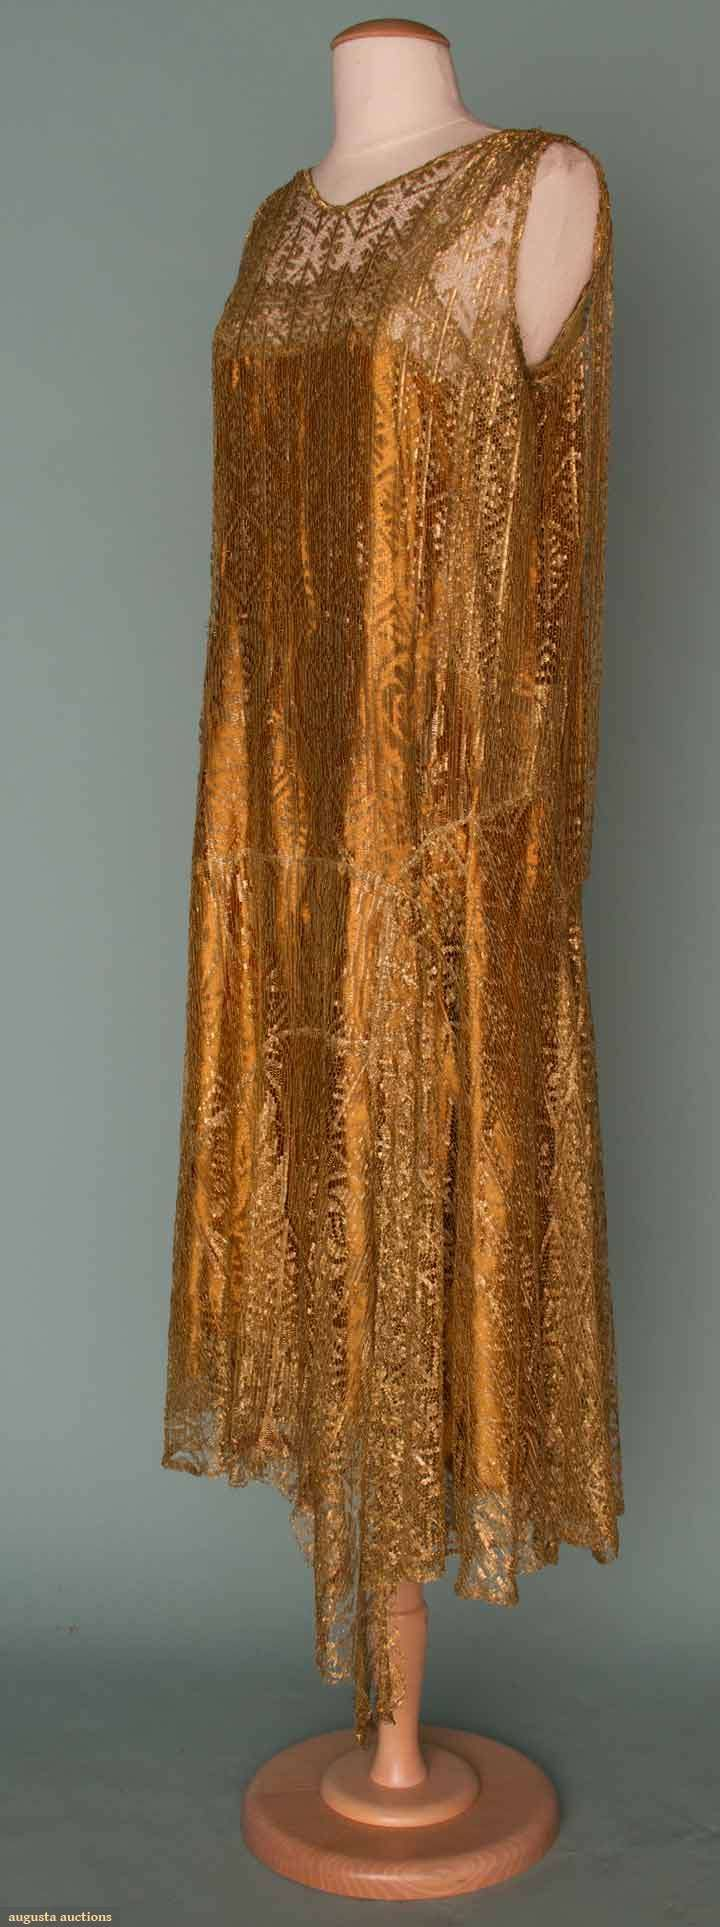 GOLD LACE PARTY DRESS, 1920s  All-over gold lace w/ copper rayon charmeuse underslip